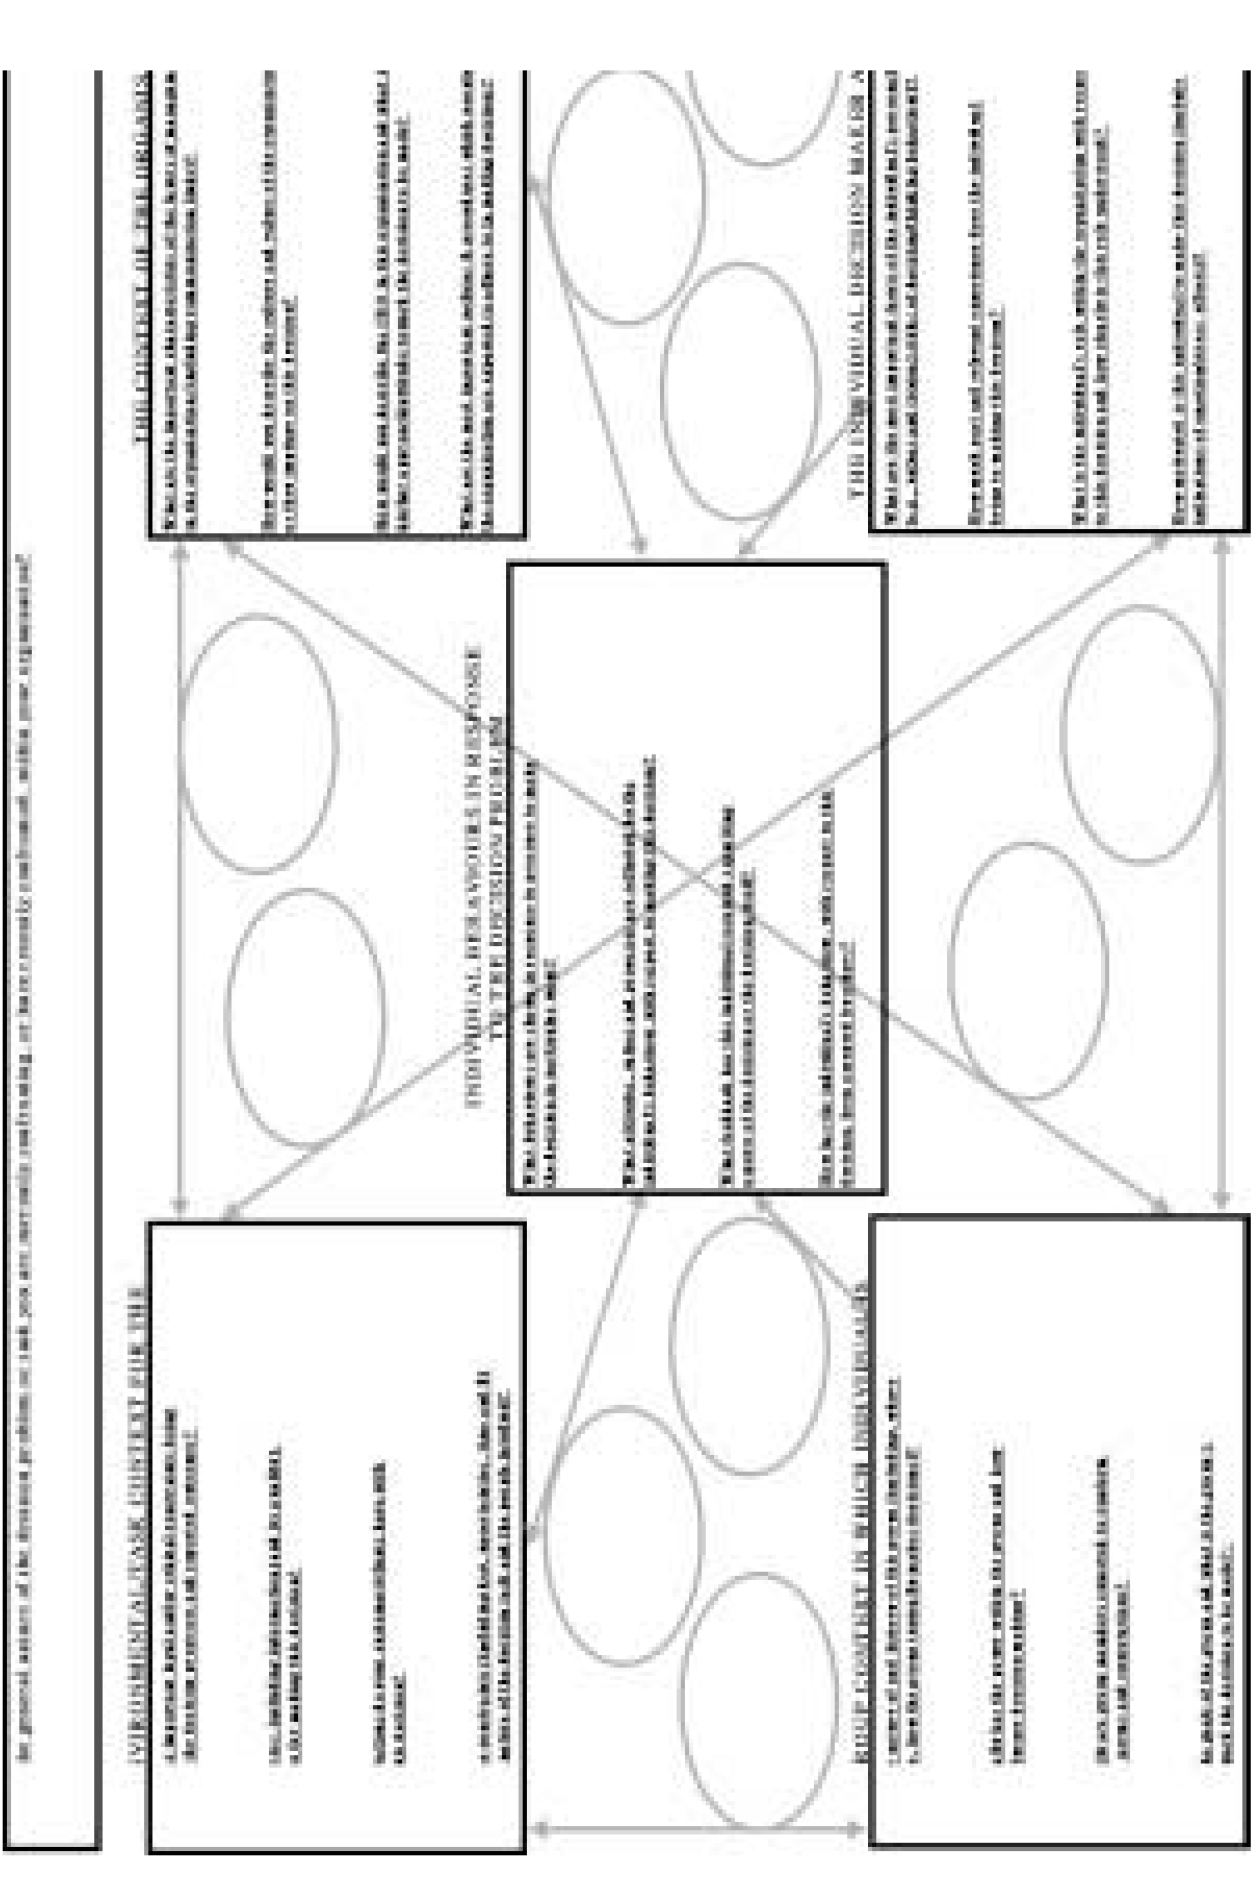 Managerial Decision Modeling With Spreadsheets Answer Key Regarding Mapping The Texture Of Managerial Decision Making – Emergence